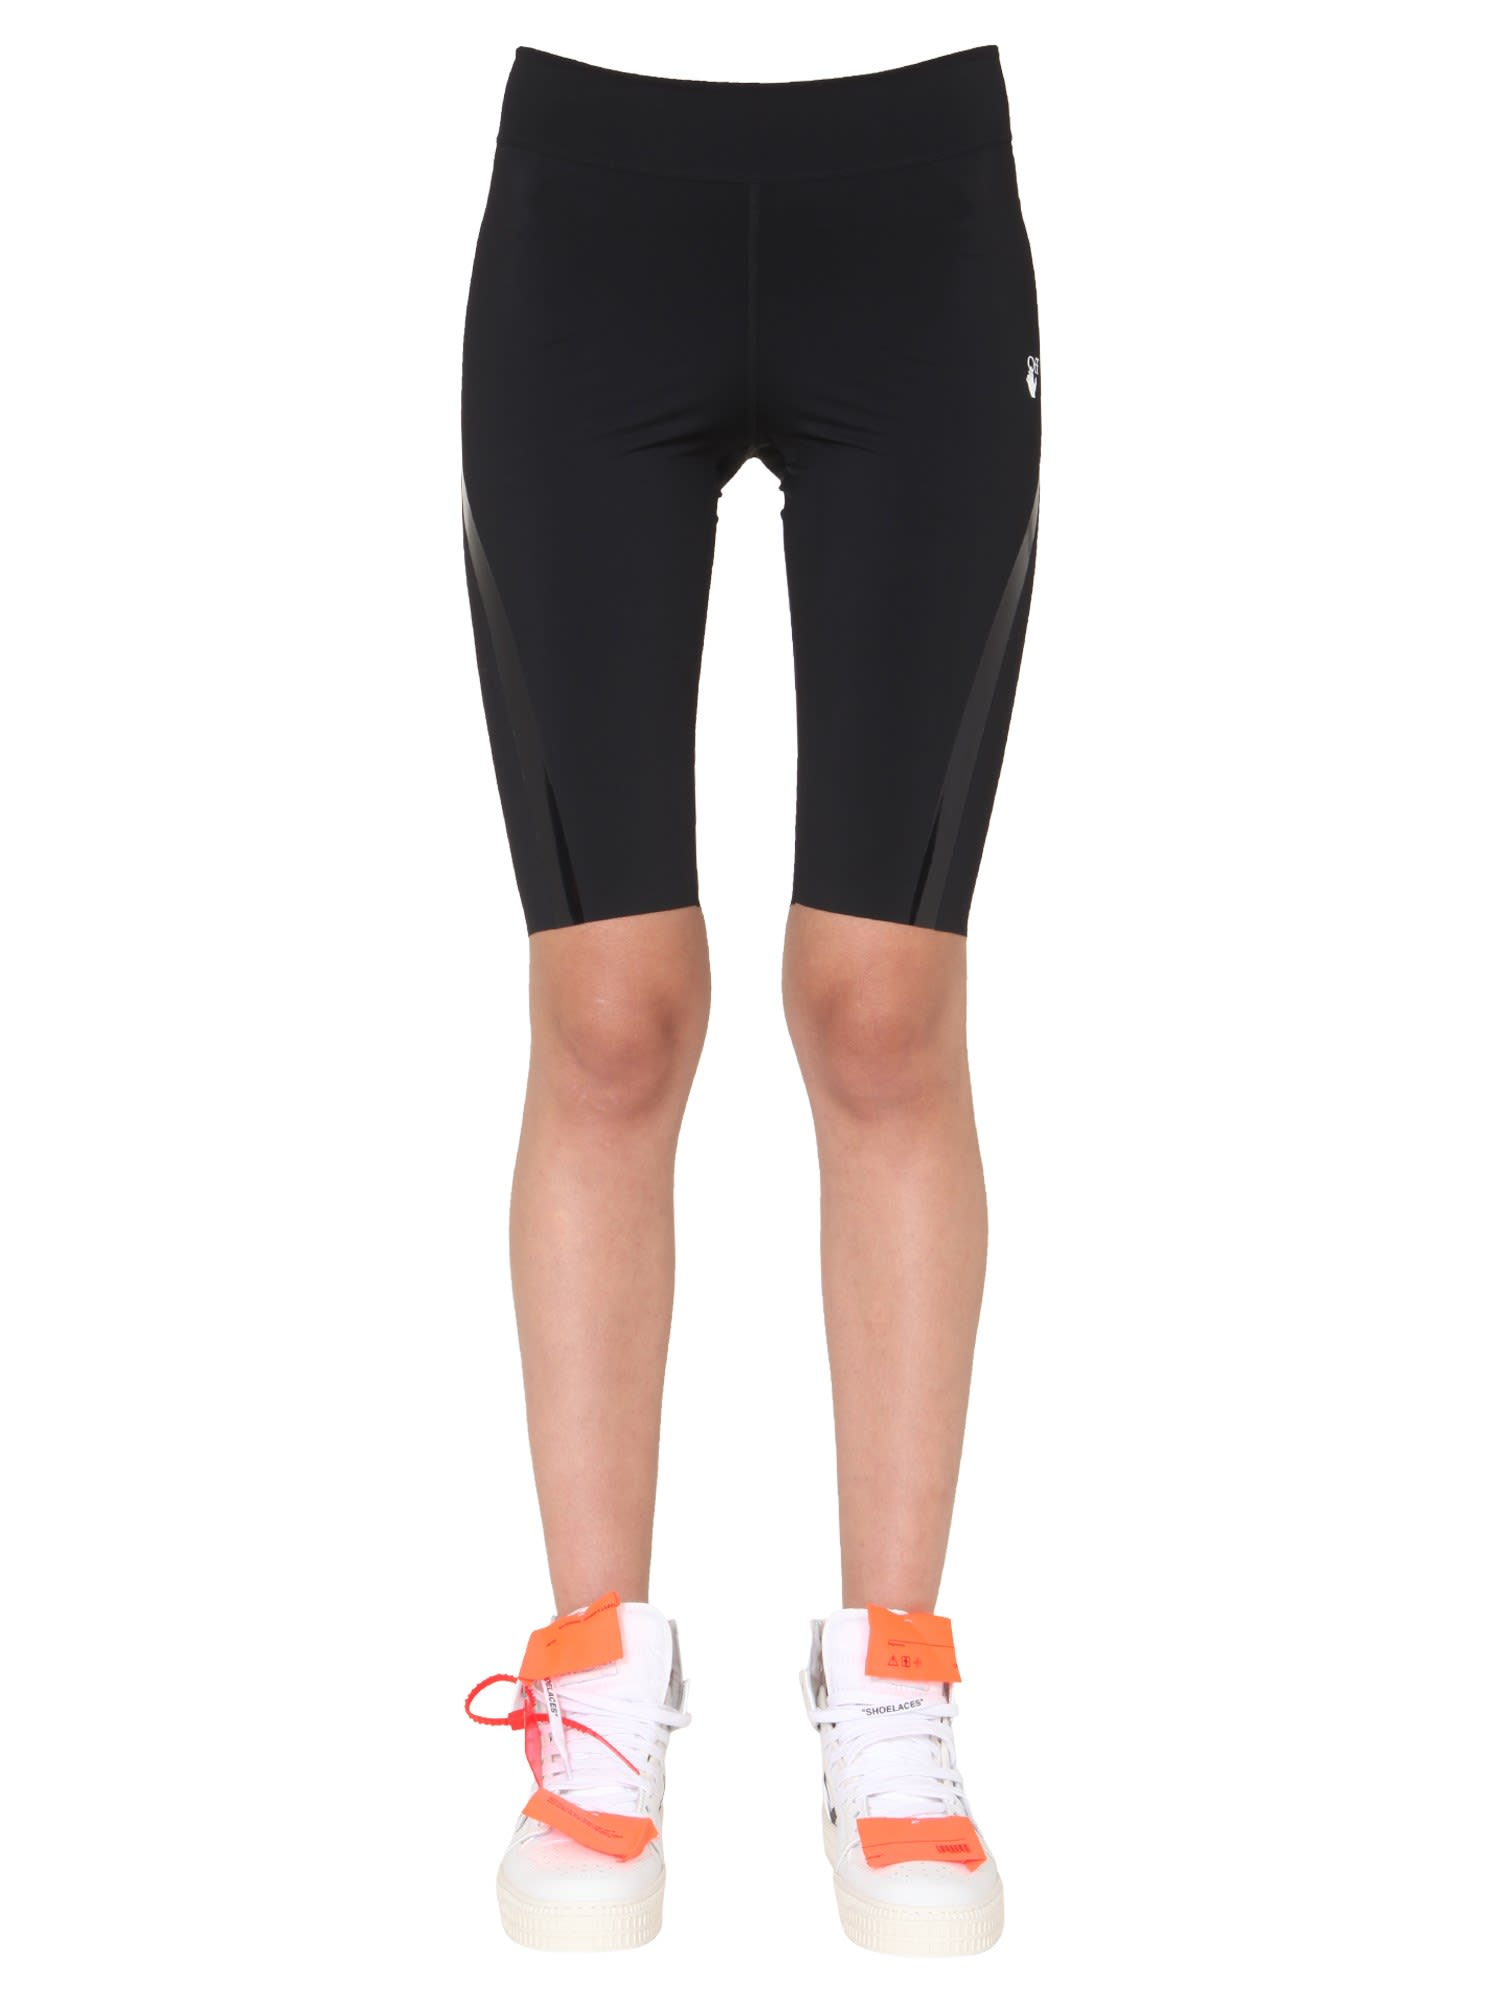 Off-White ATHLEISURE CYCLING SHORTS